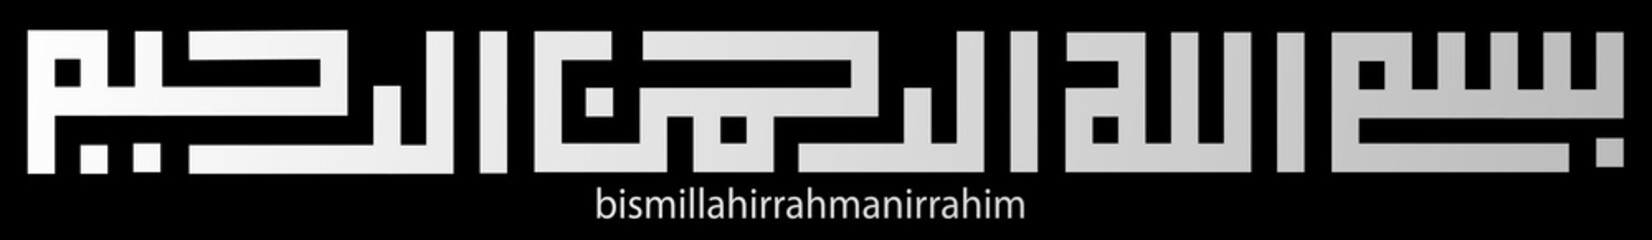 kufi eid and dzikr logo which mean peace